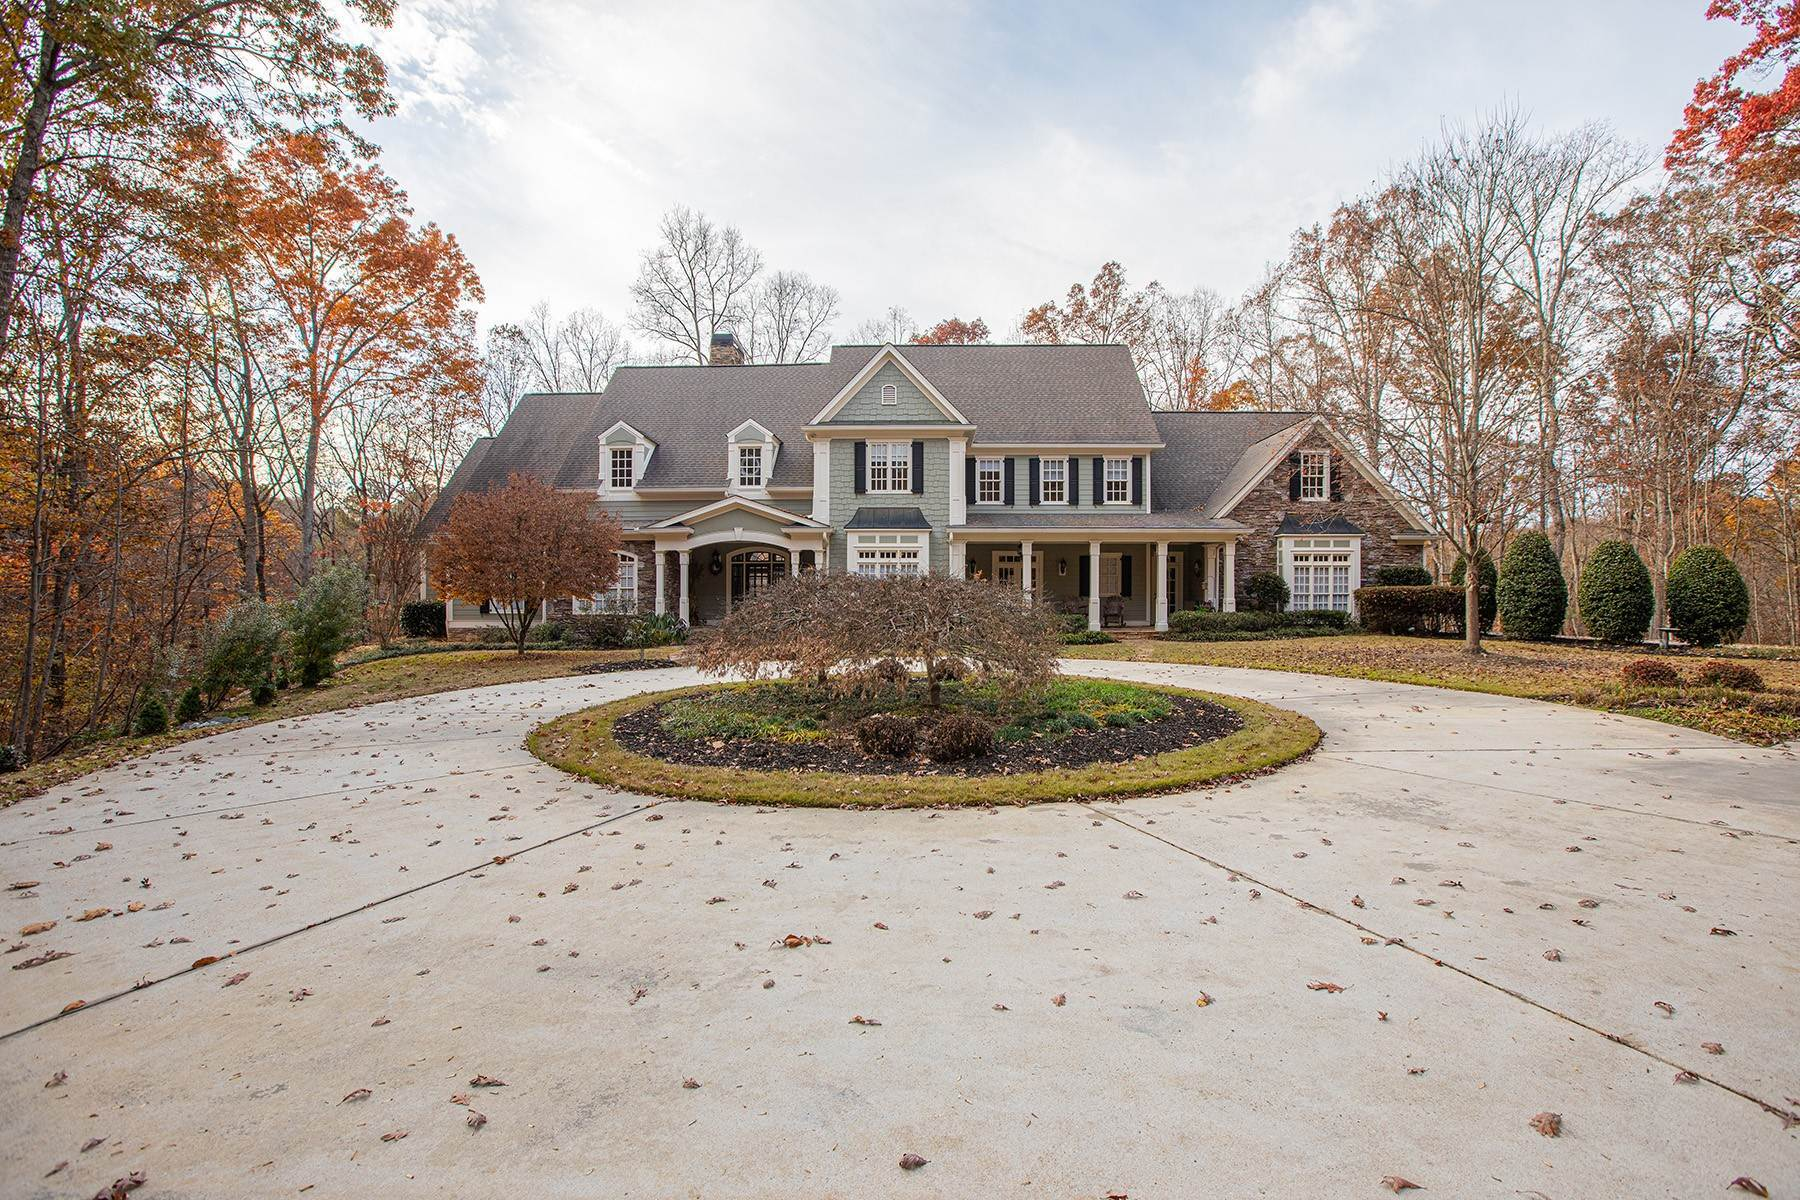 Single Family Homes for Active at Gated Estate On 6+ Acres 55 Summitrail Lane Dawsonville, Georgia 30534 United States